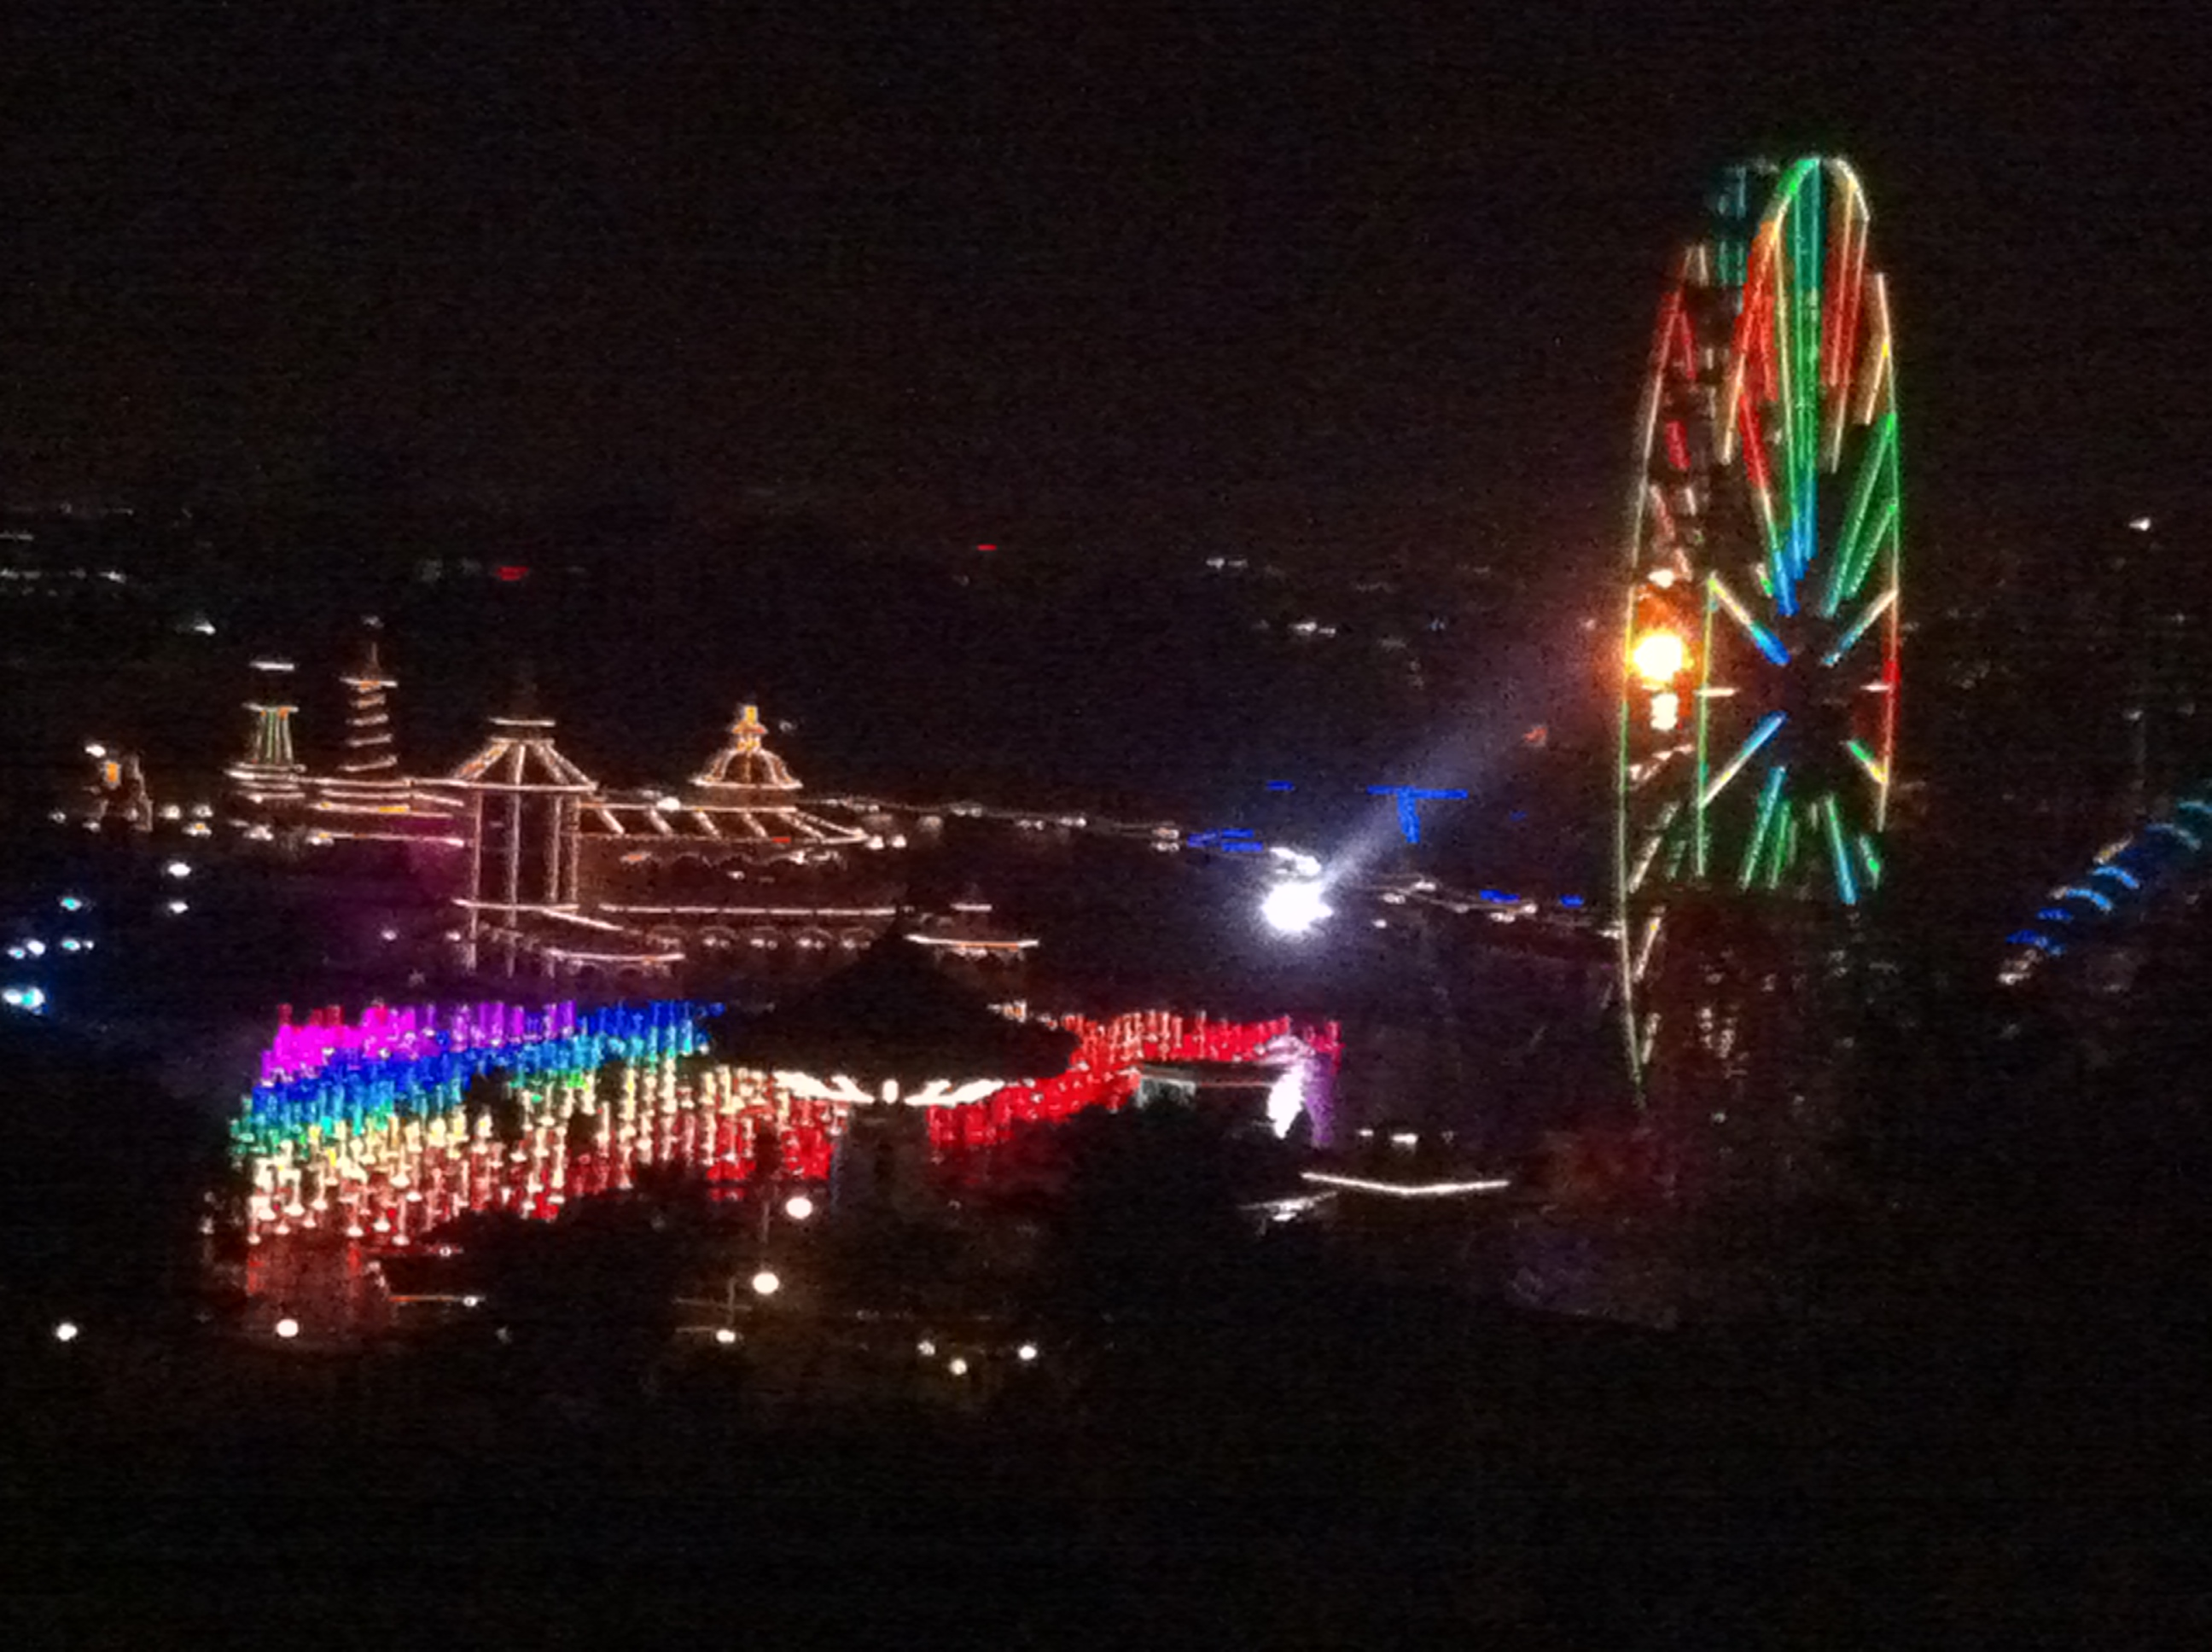 Another World of Color View